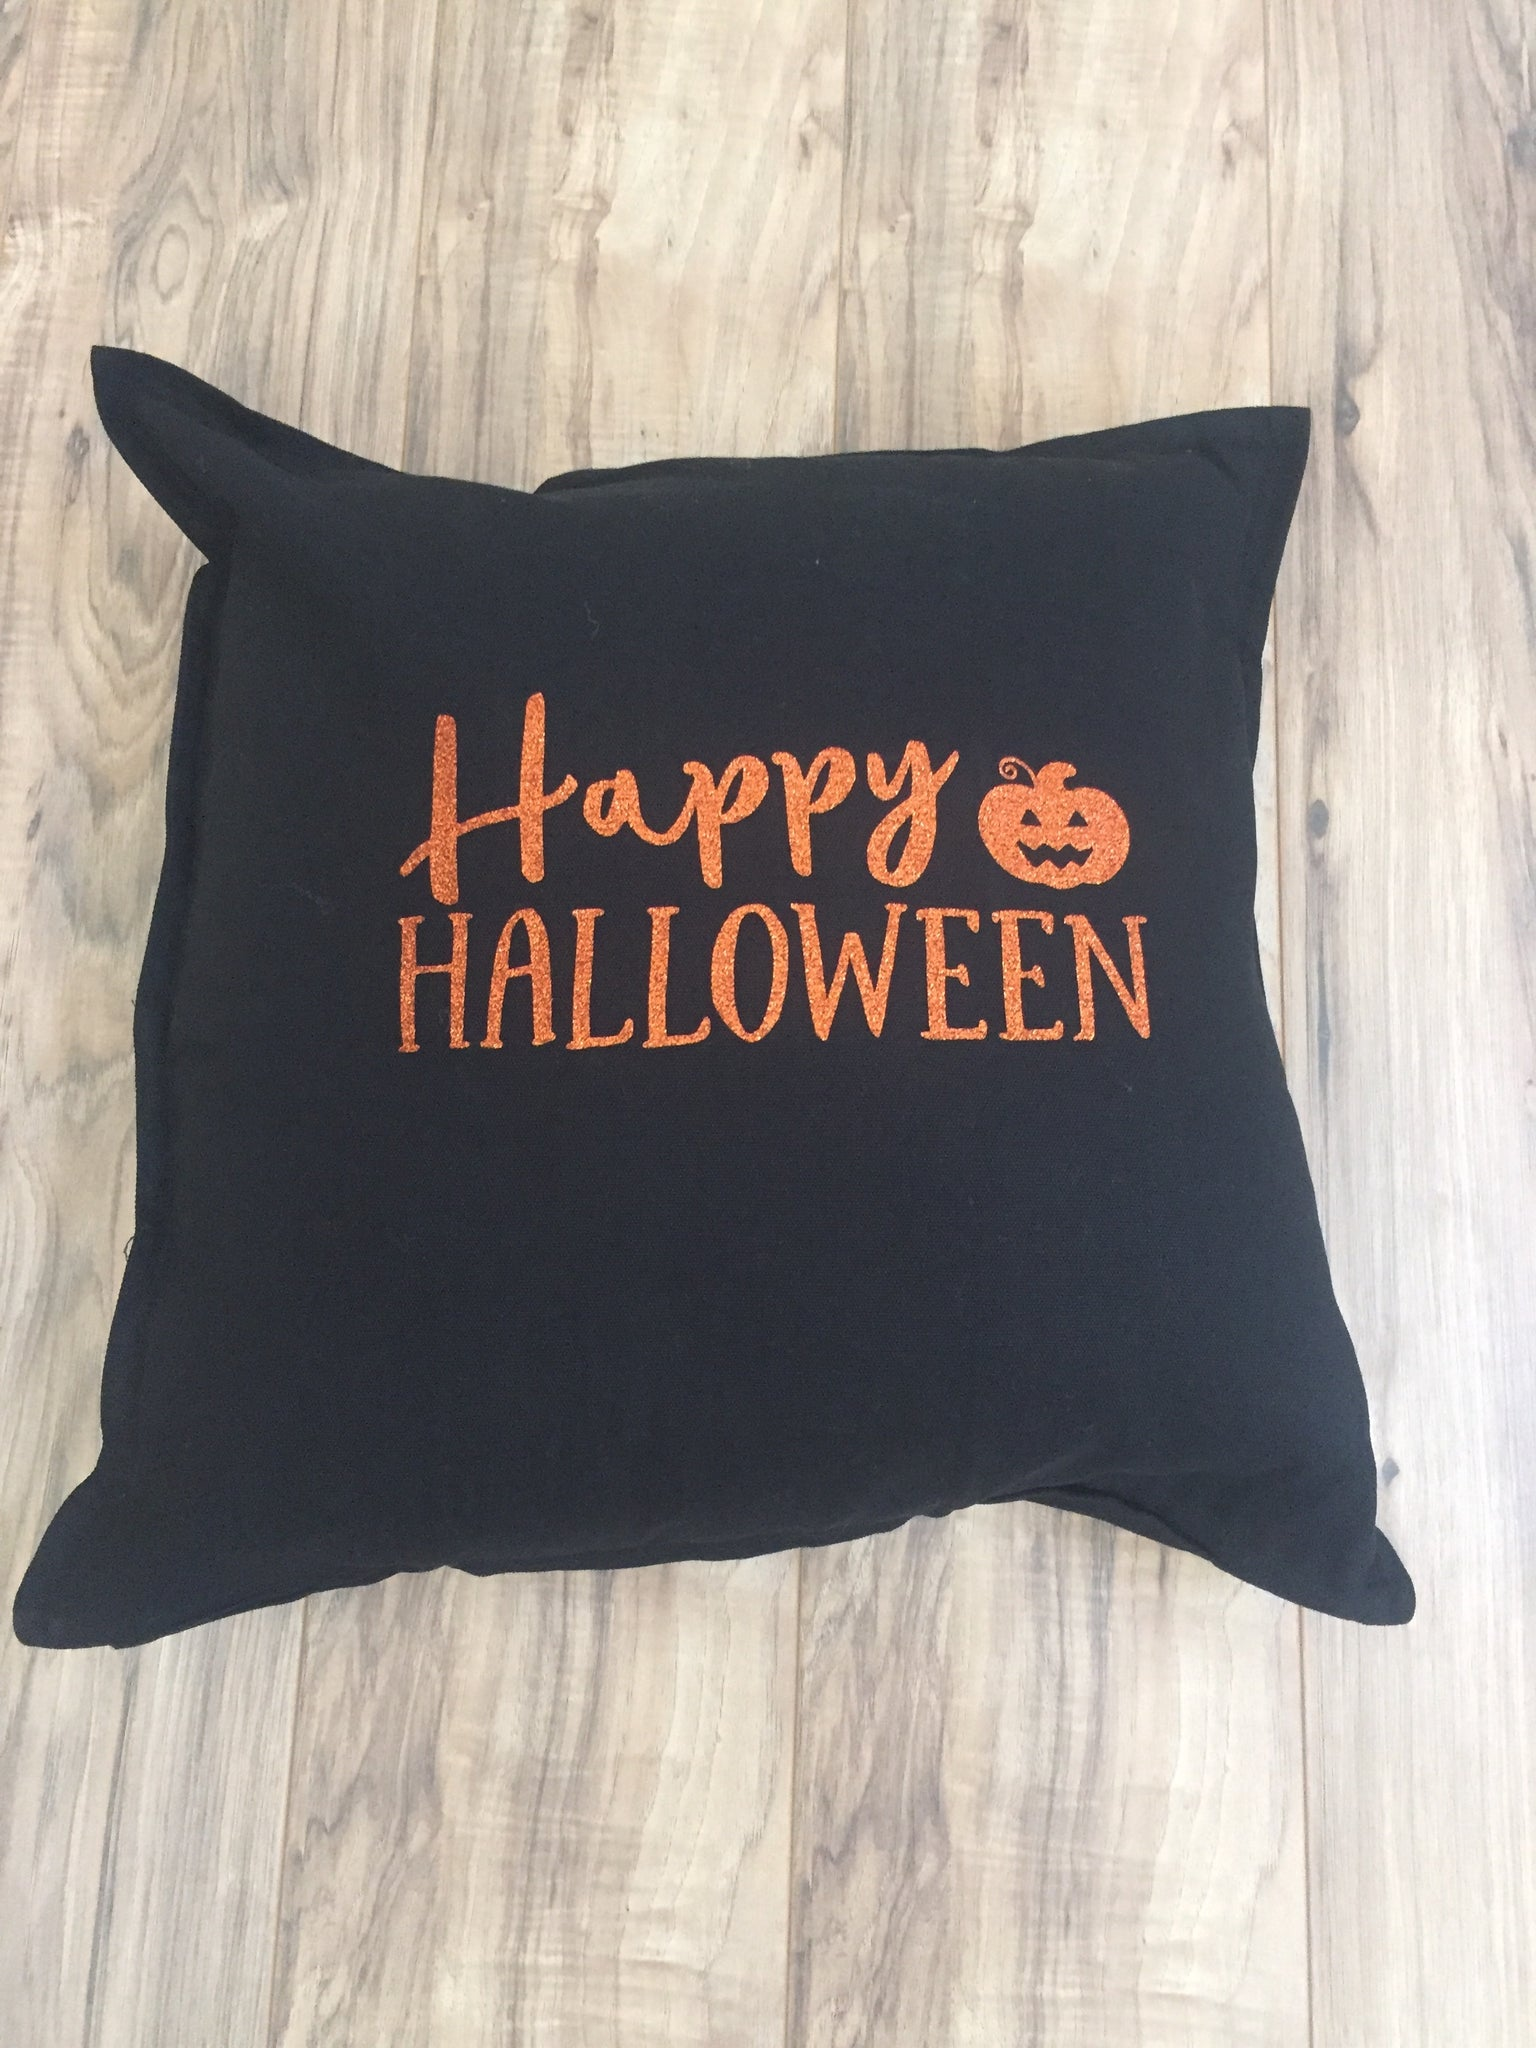 Happy Halloween Pillowcase